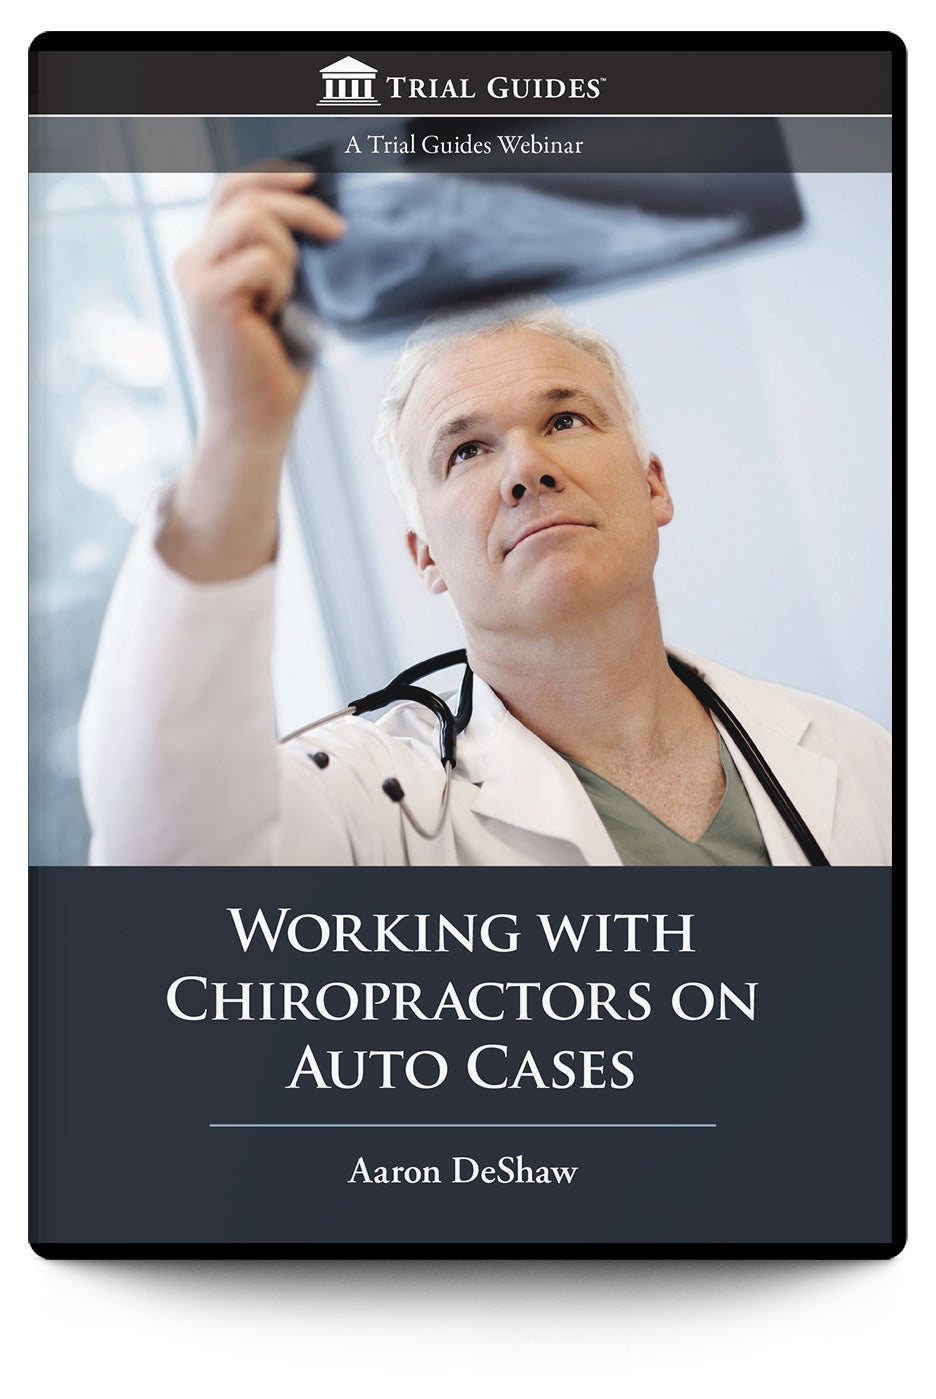 Working with Chiropractors on Auto Cases